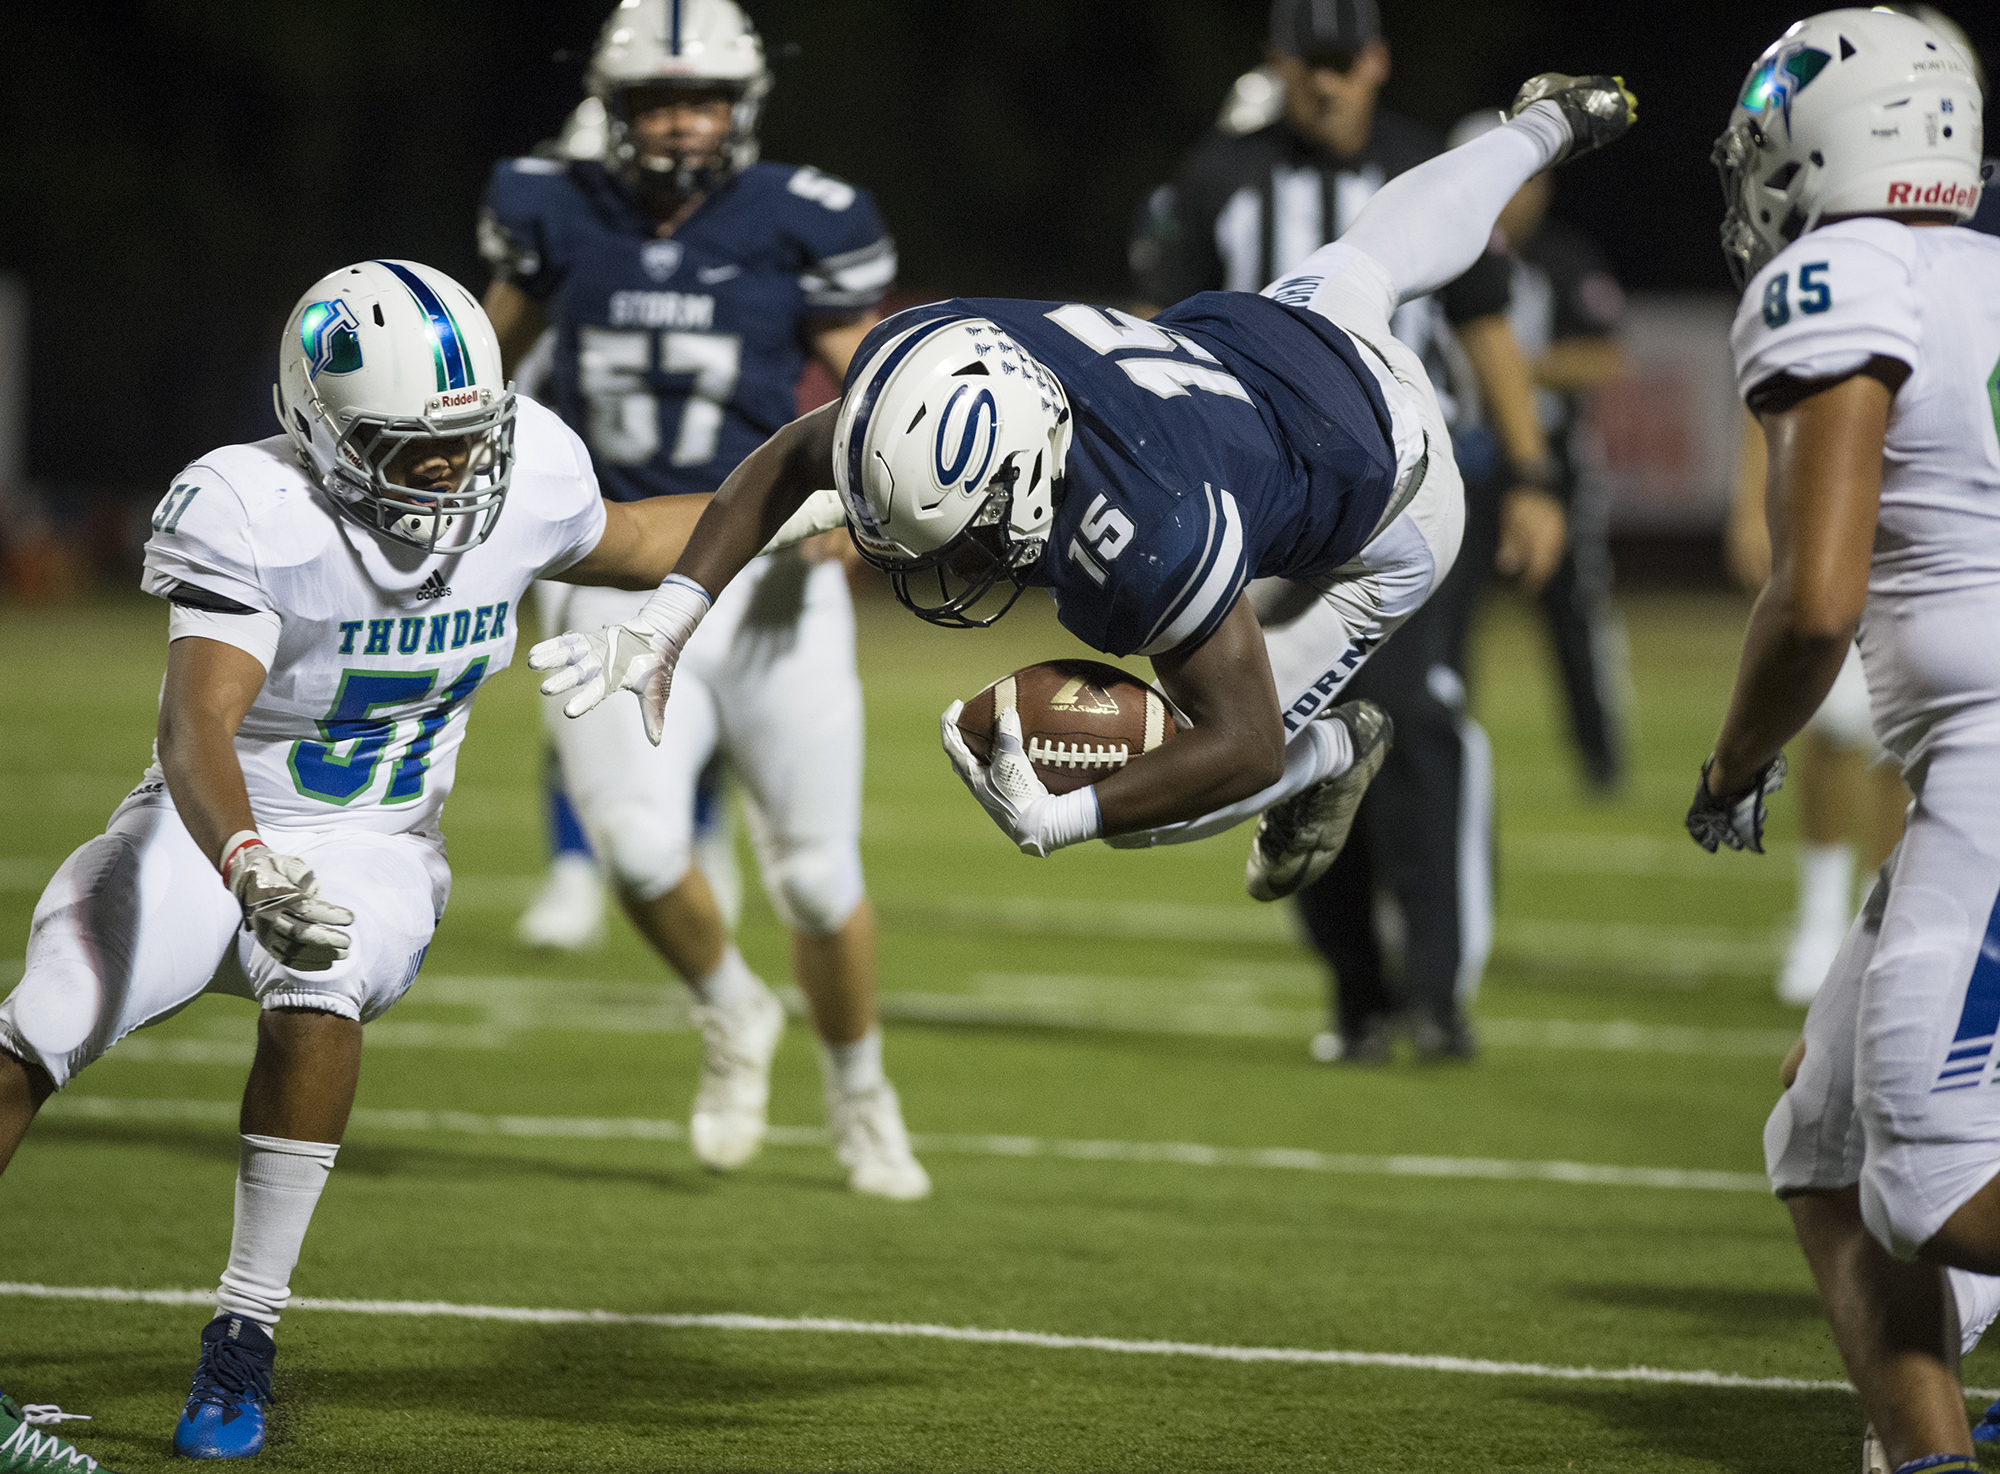 Skyview's Jalynnee McGee (15) soars past Mountain View's Kobe Anderson (51) during the first quarter at Kiggins Bowl in Vancouver, Friday September 22, 2017. (Ariane Kunze/The Columbian)